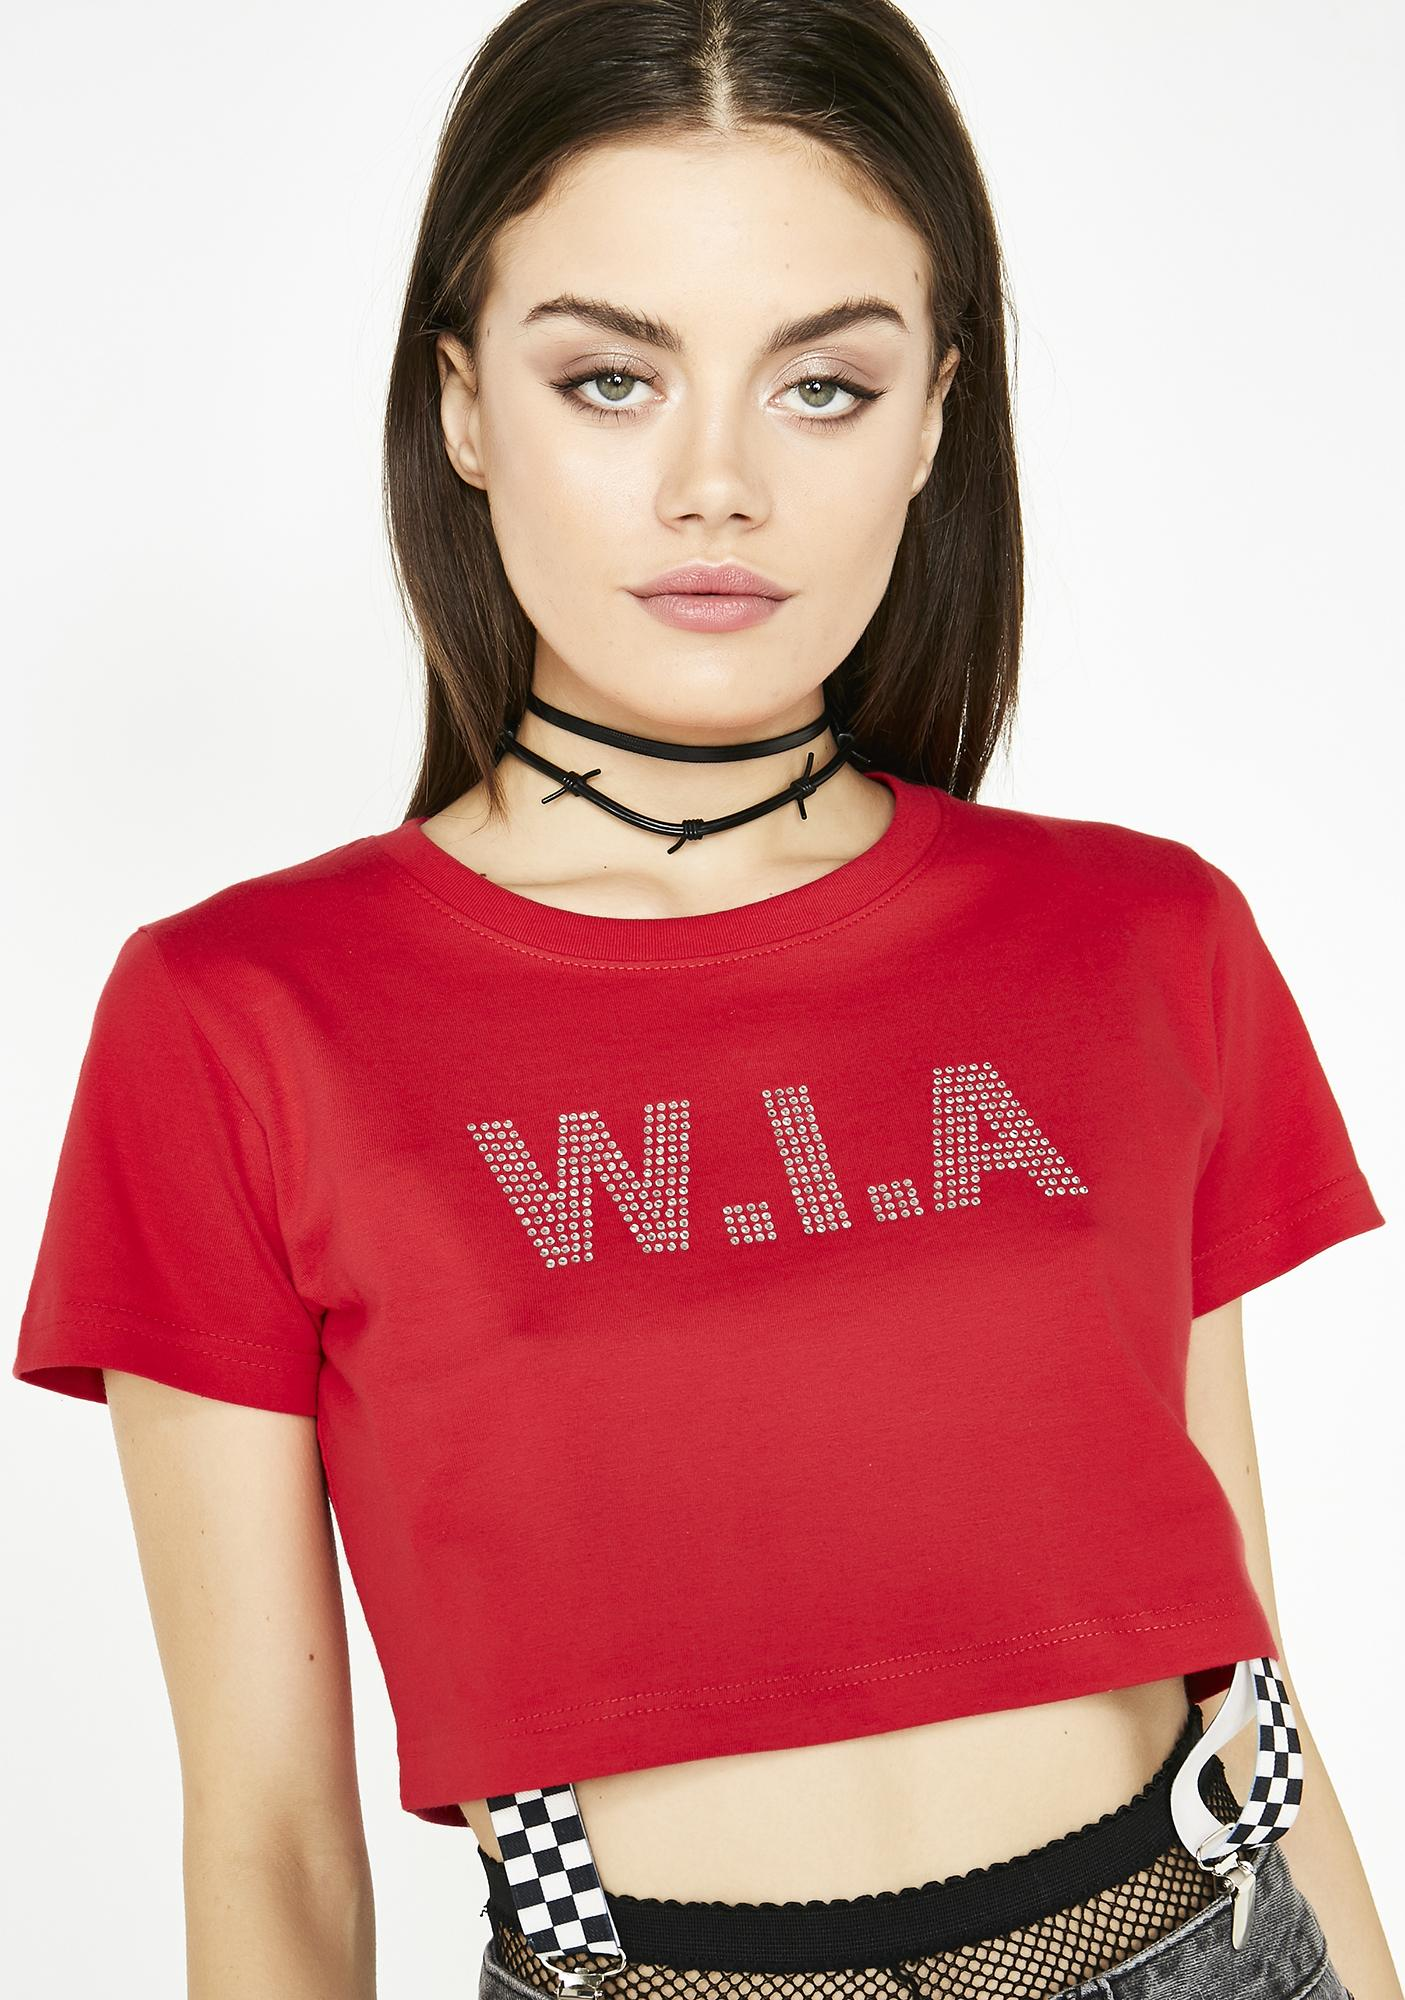 W.I.A Perturbed Crop Top